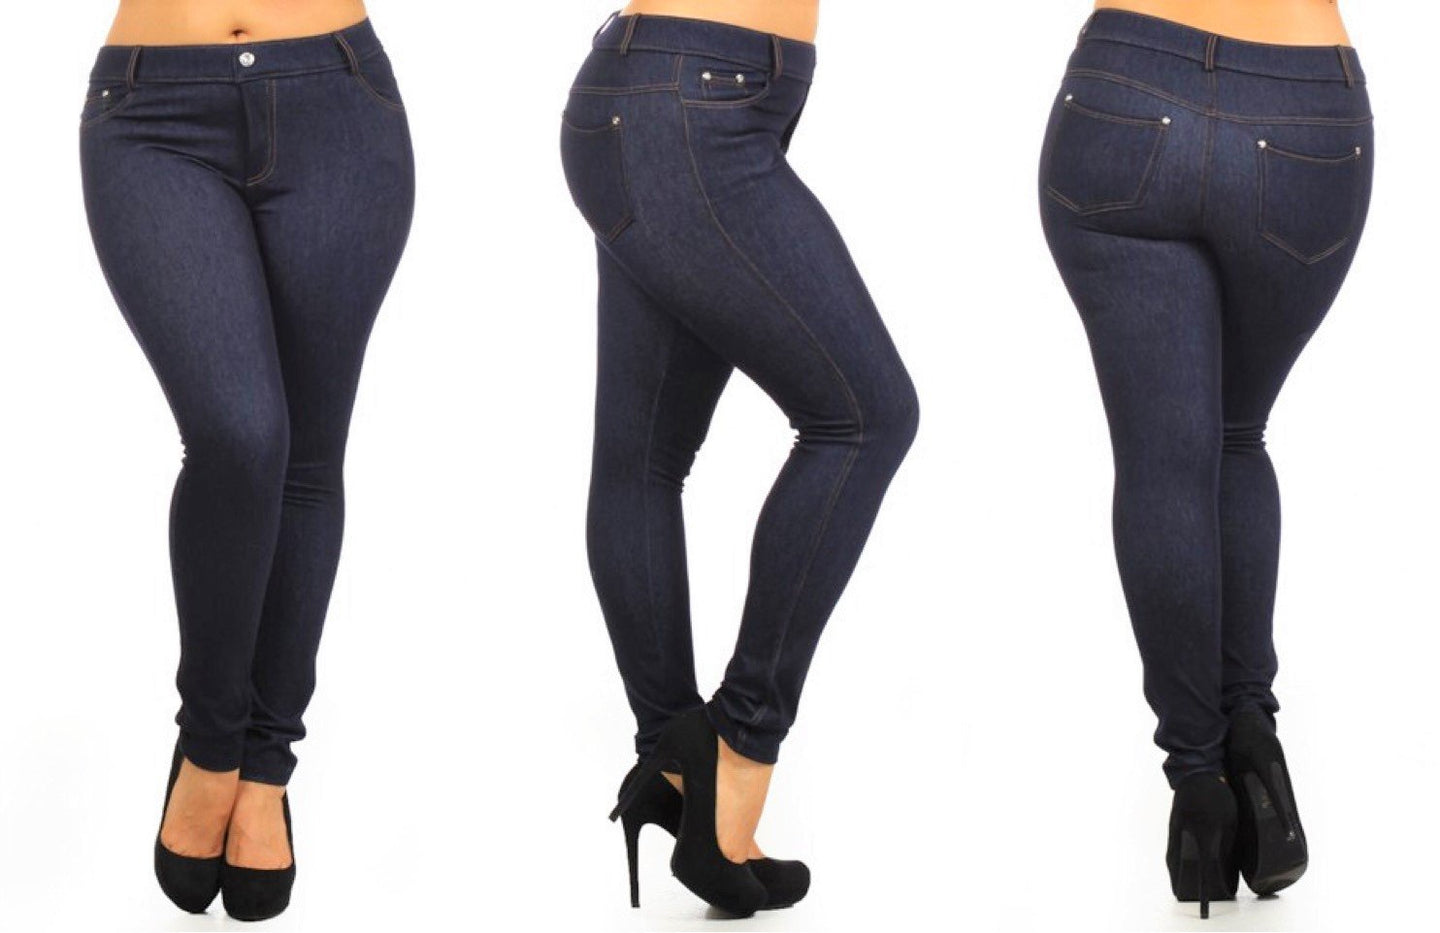 Stretchy & Soft Skinny Jean Leggings (Plus Size)